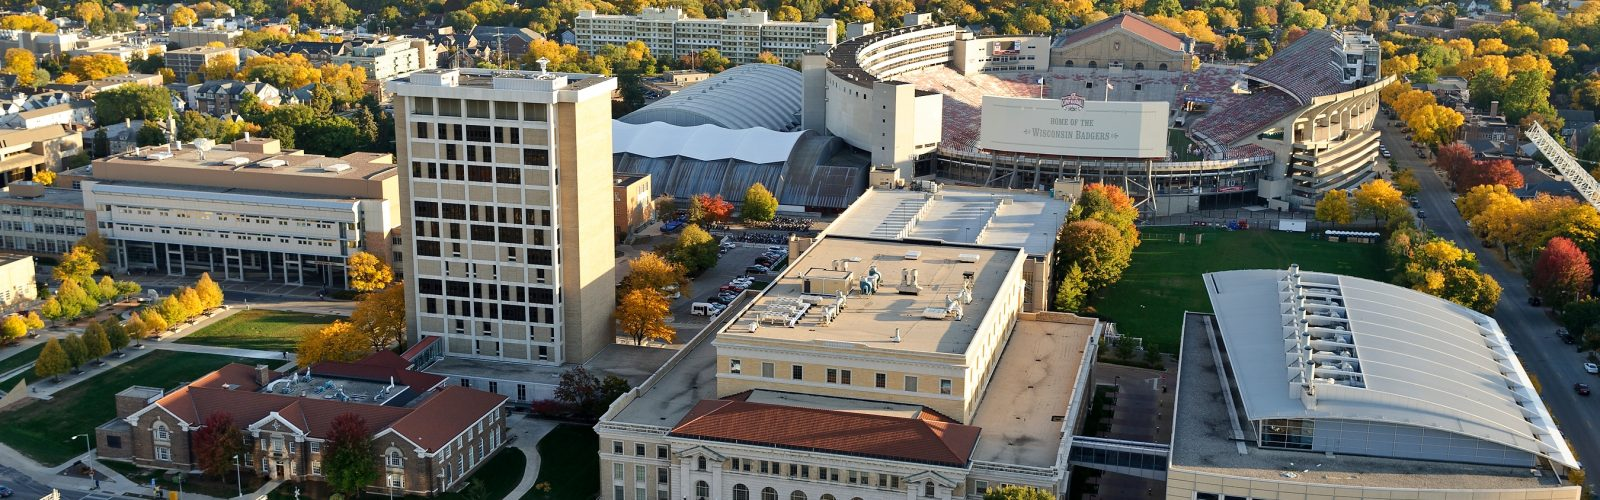 The engineering campus at the University of Wisconsin-Madison